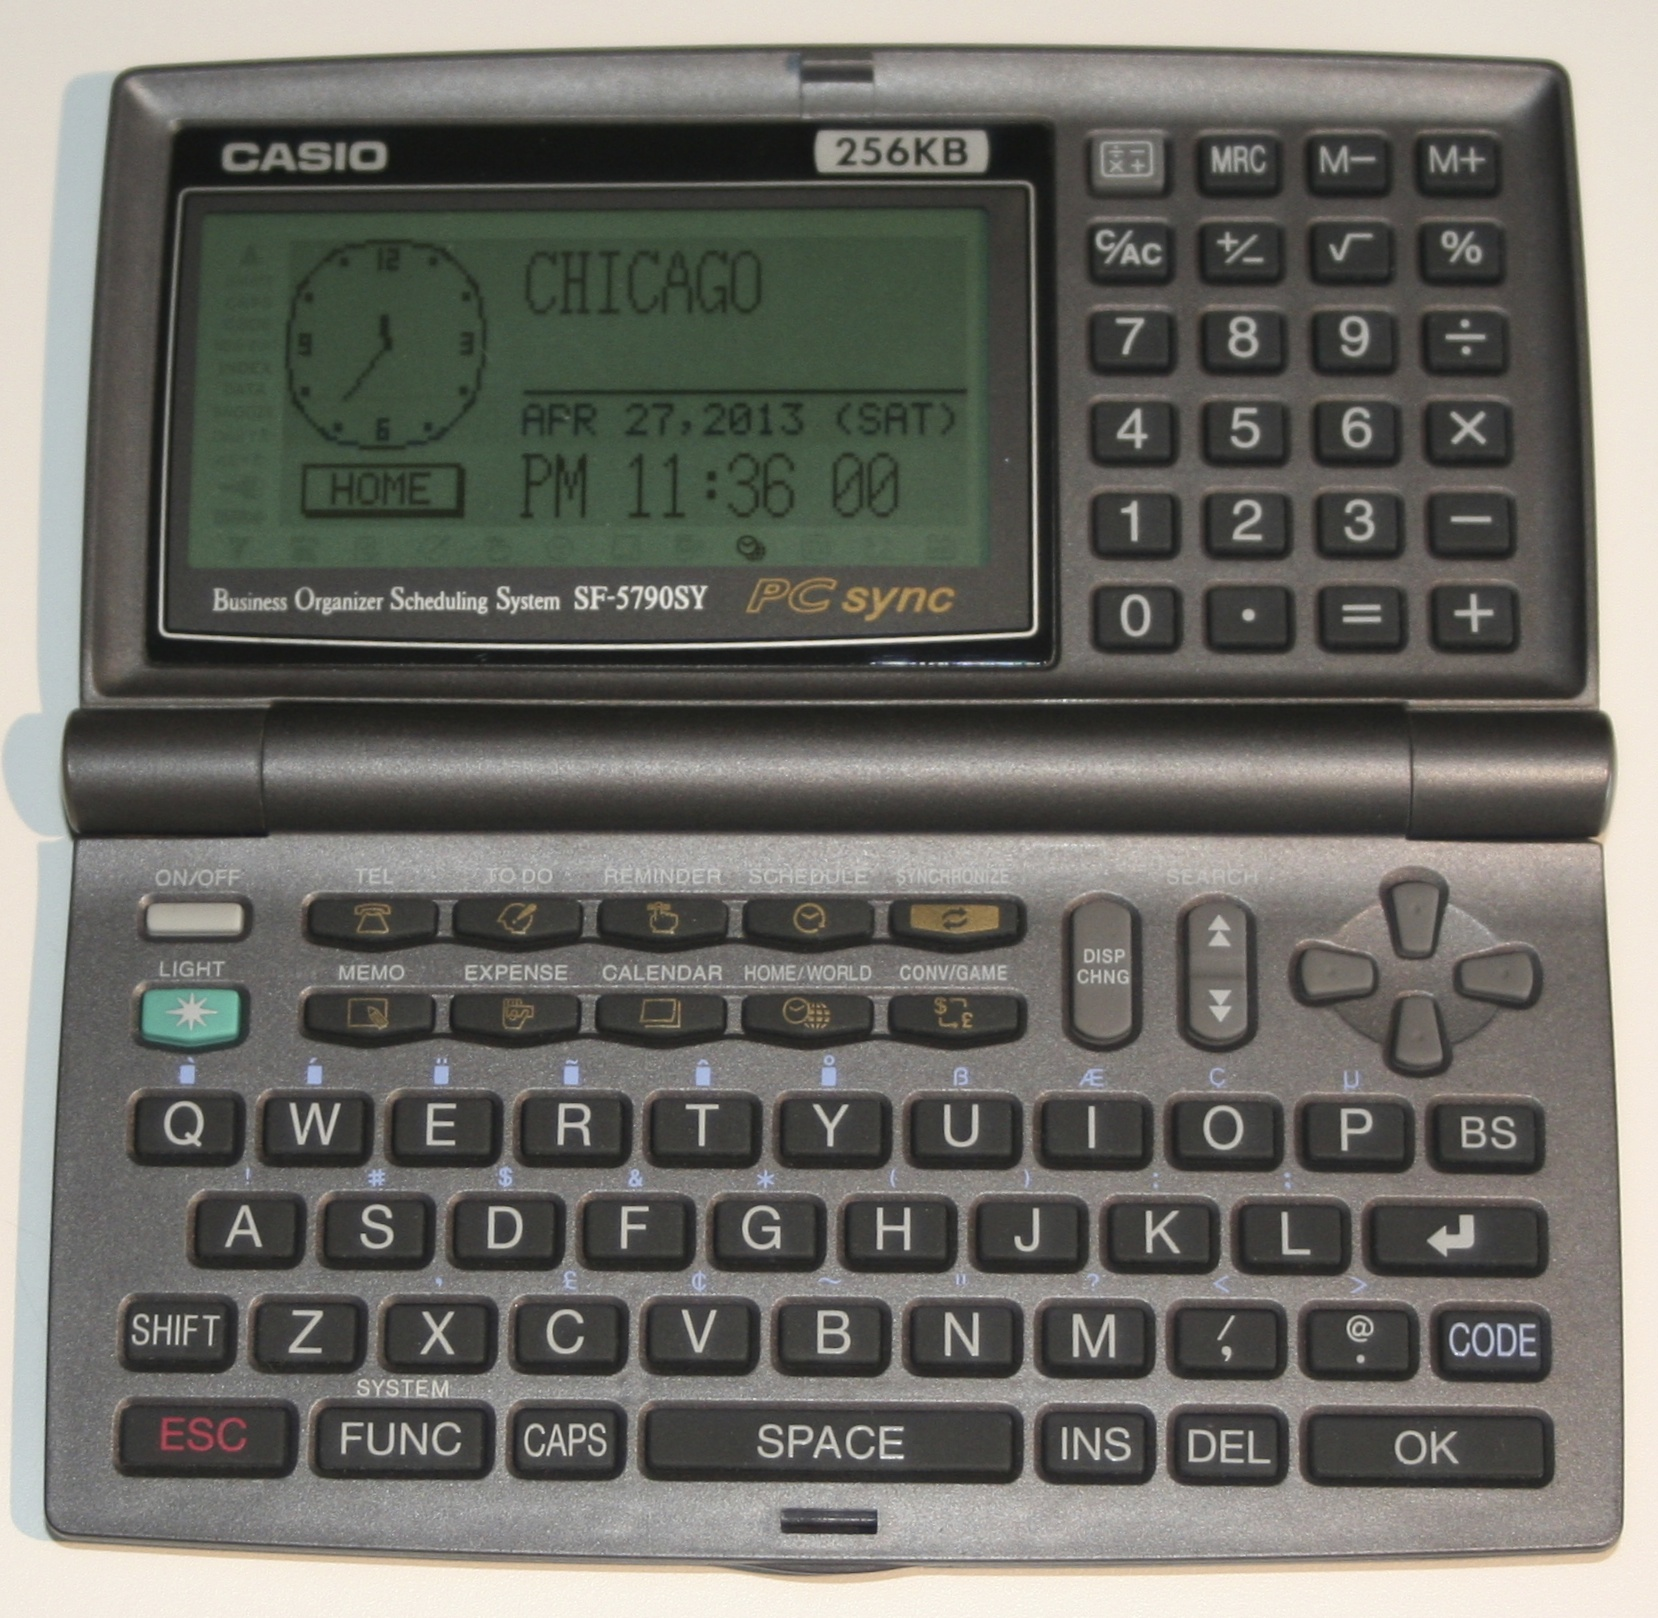 So many buttons! All those pixels! And it even has a calculator!